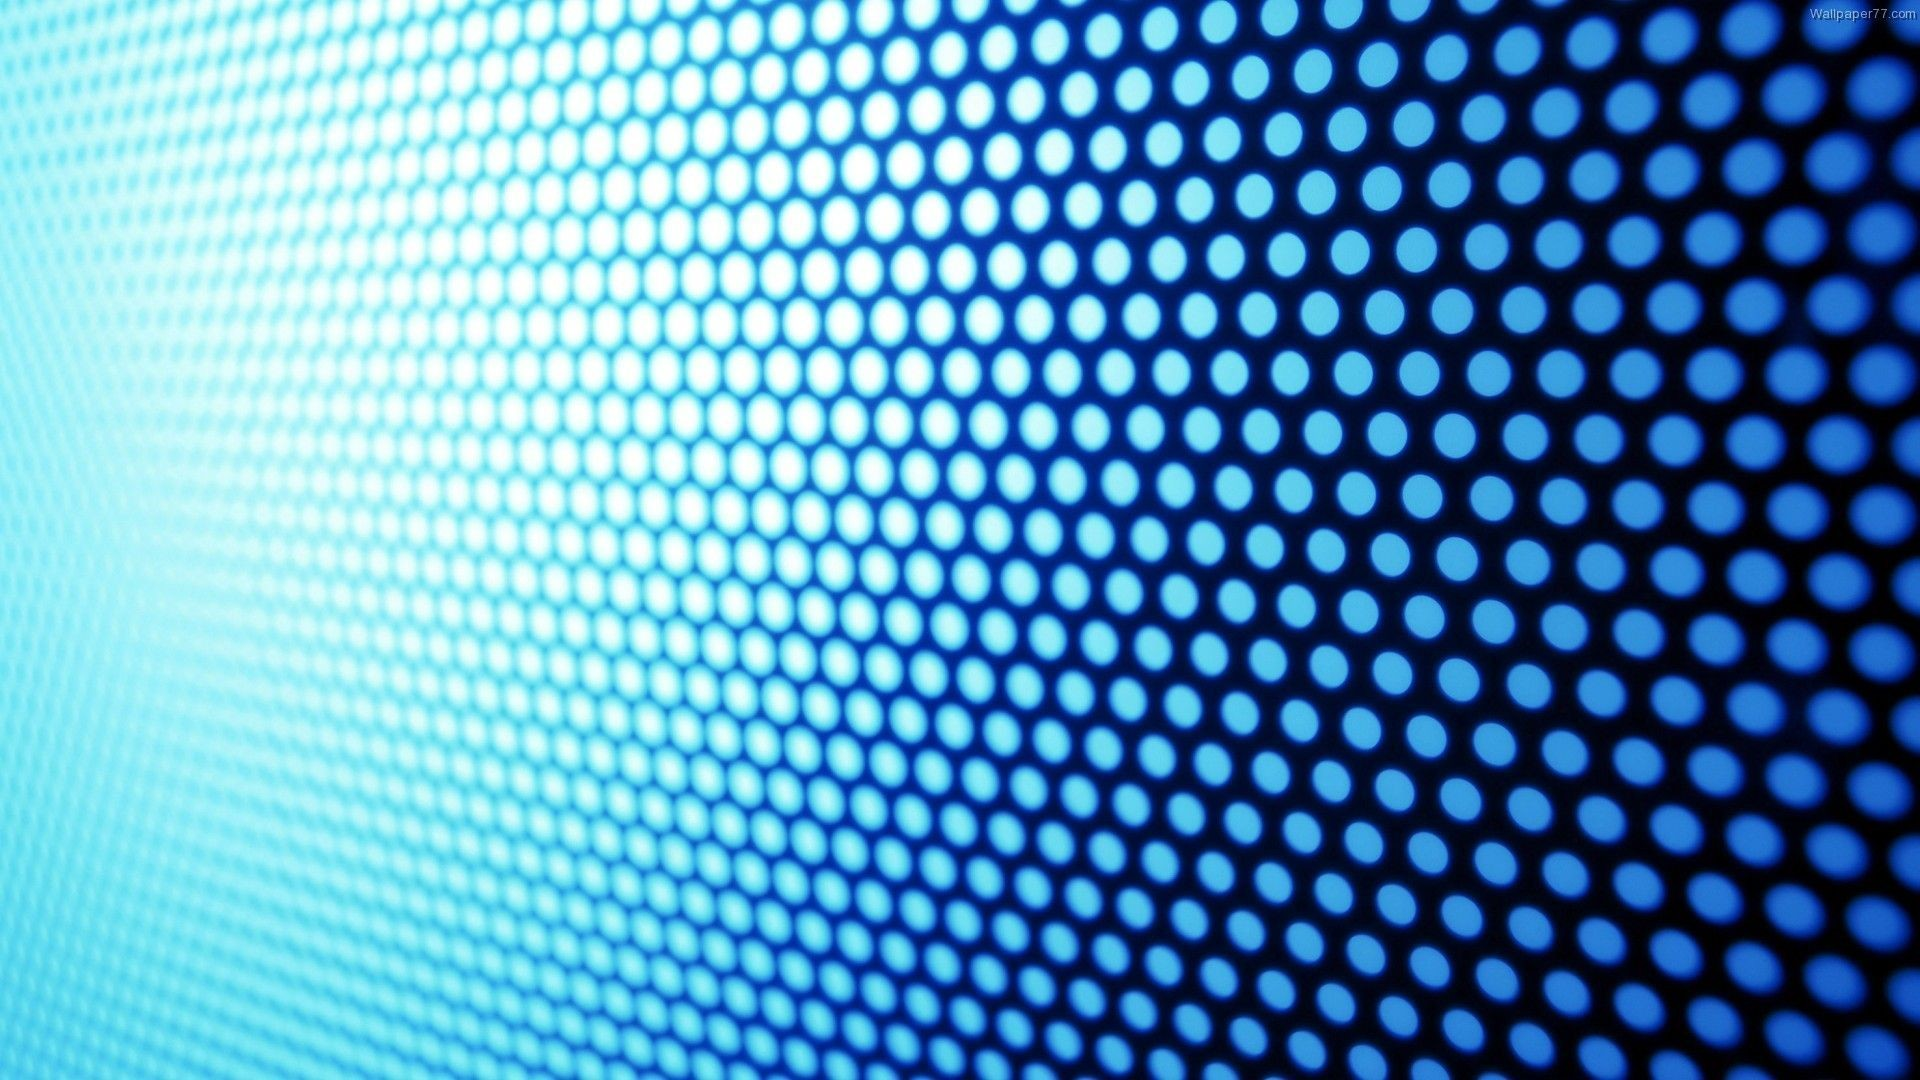 Res: 1920x1080, Blue Honeycomb Pattern Desktop Background HD  | deskbg.com